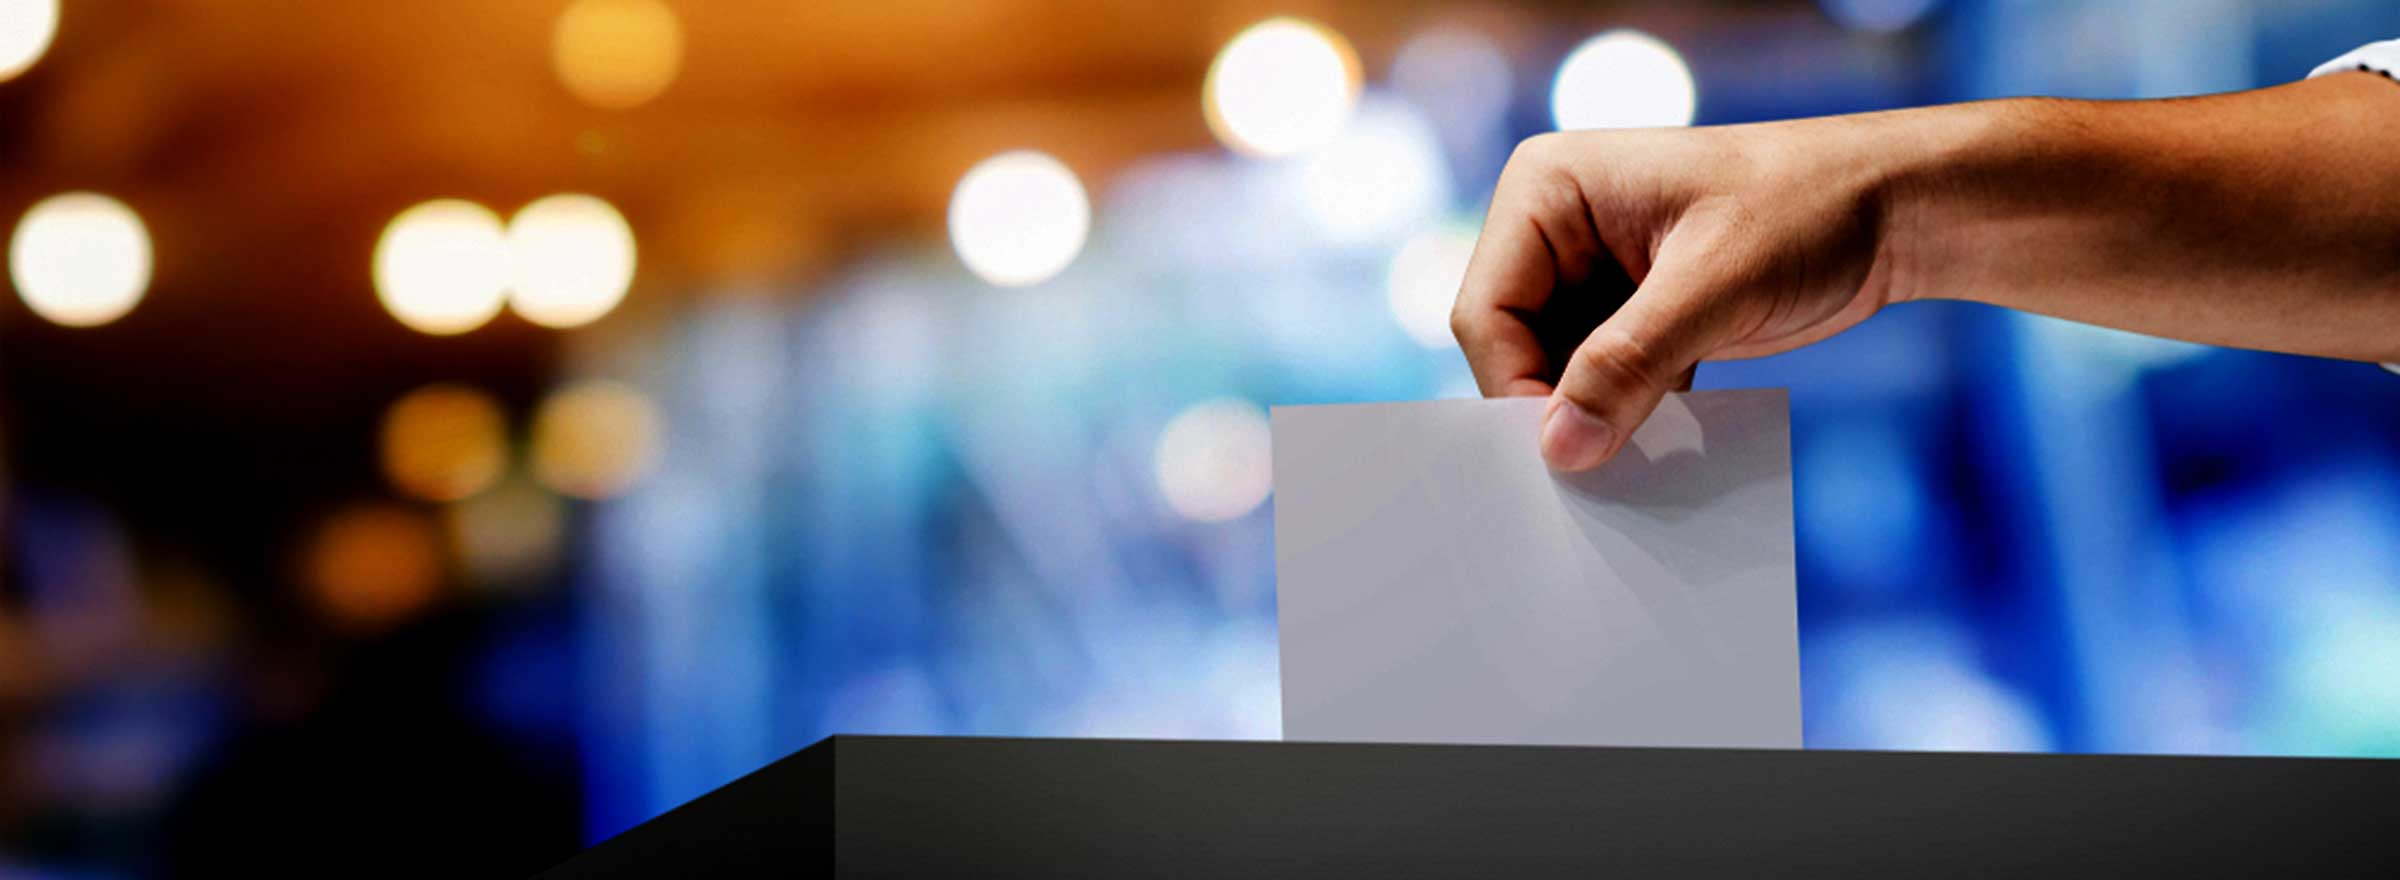 hand placing a ballot in a box